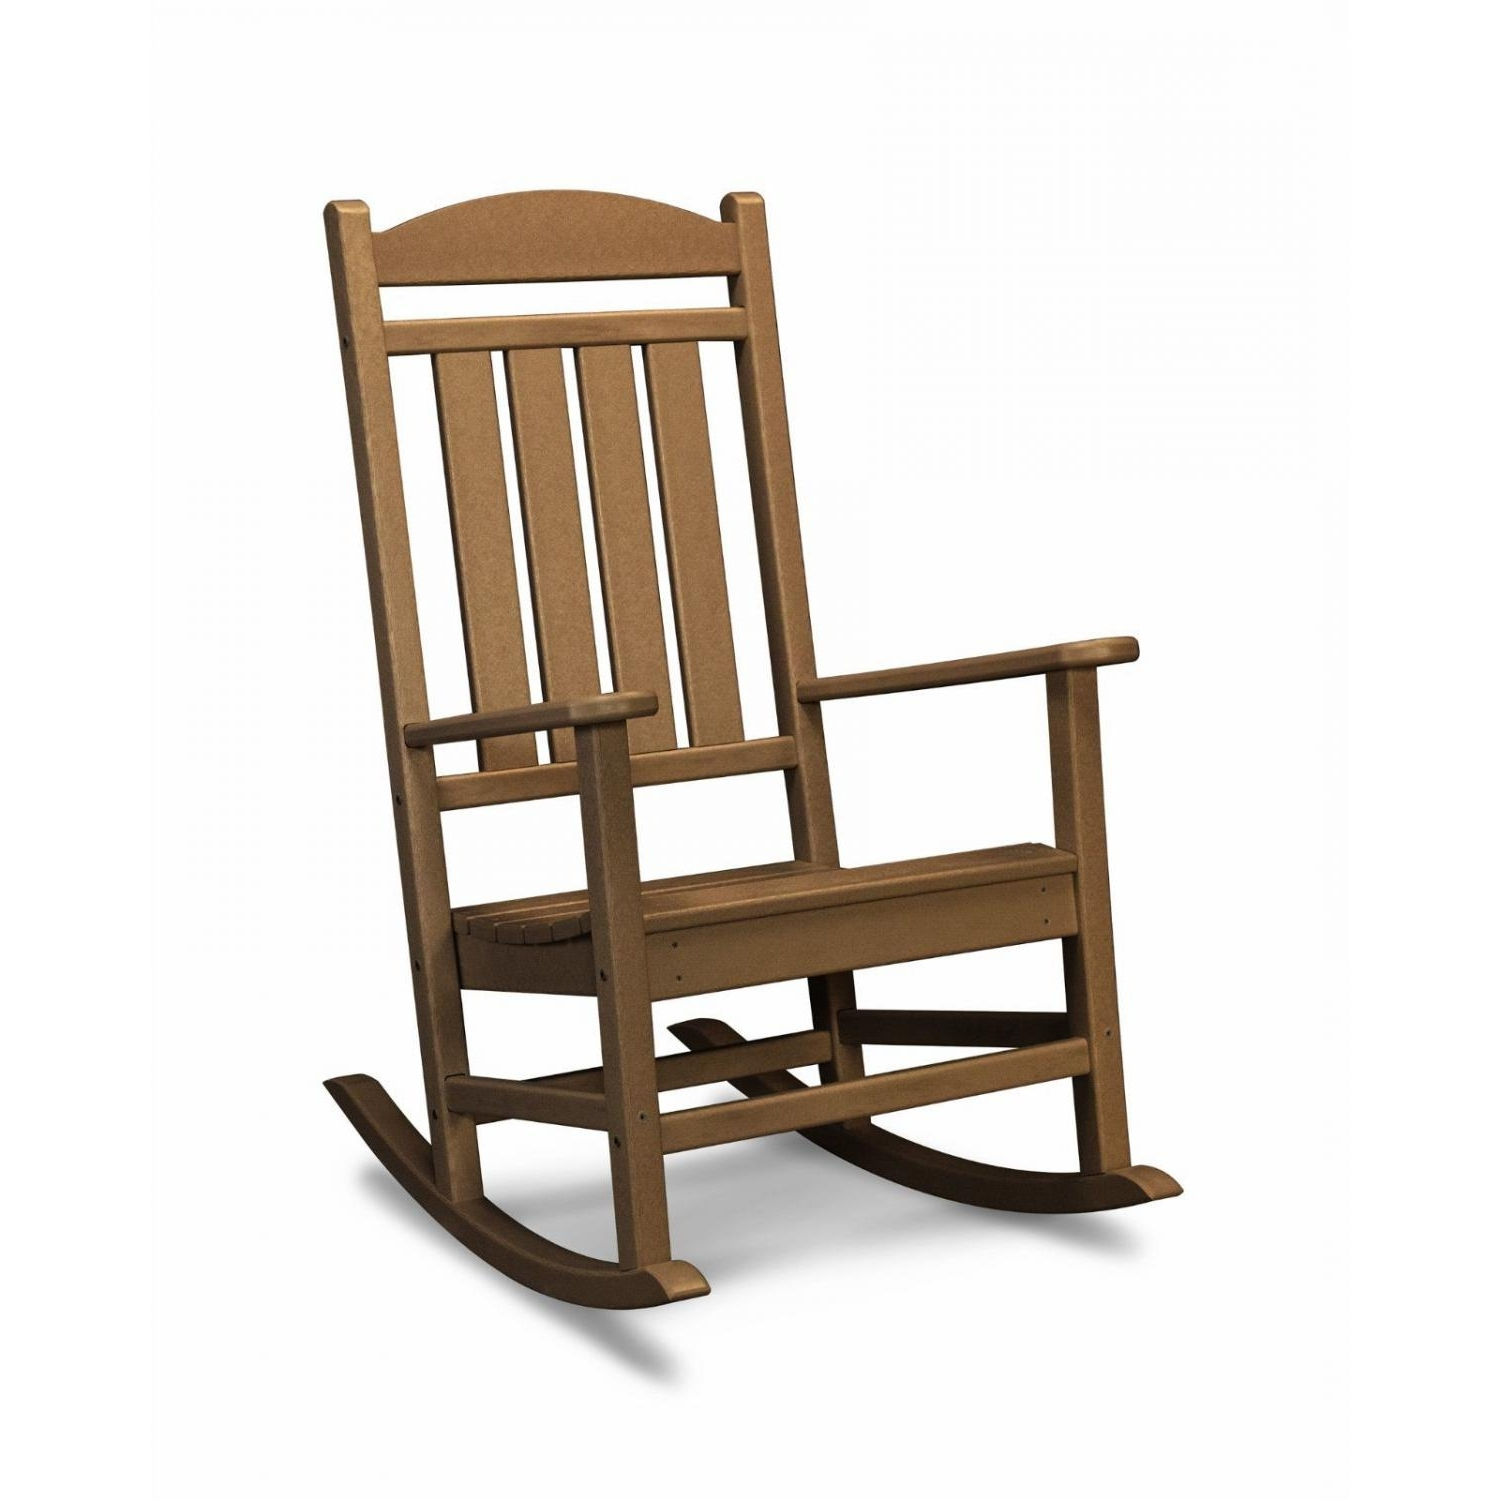 Preferred Polywood Presidential Recycled Plastic Wood Patio Rocking Chair Intended For Teak Patio Rocking Chairs (View 11 of 20)